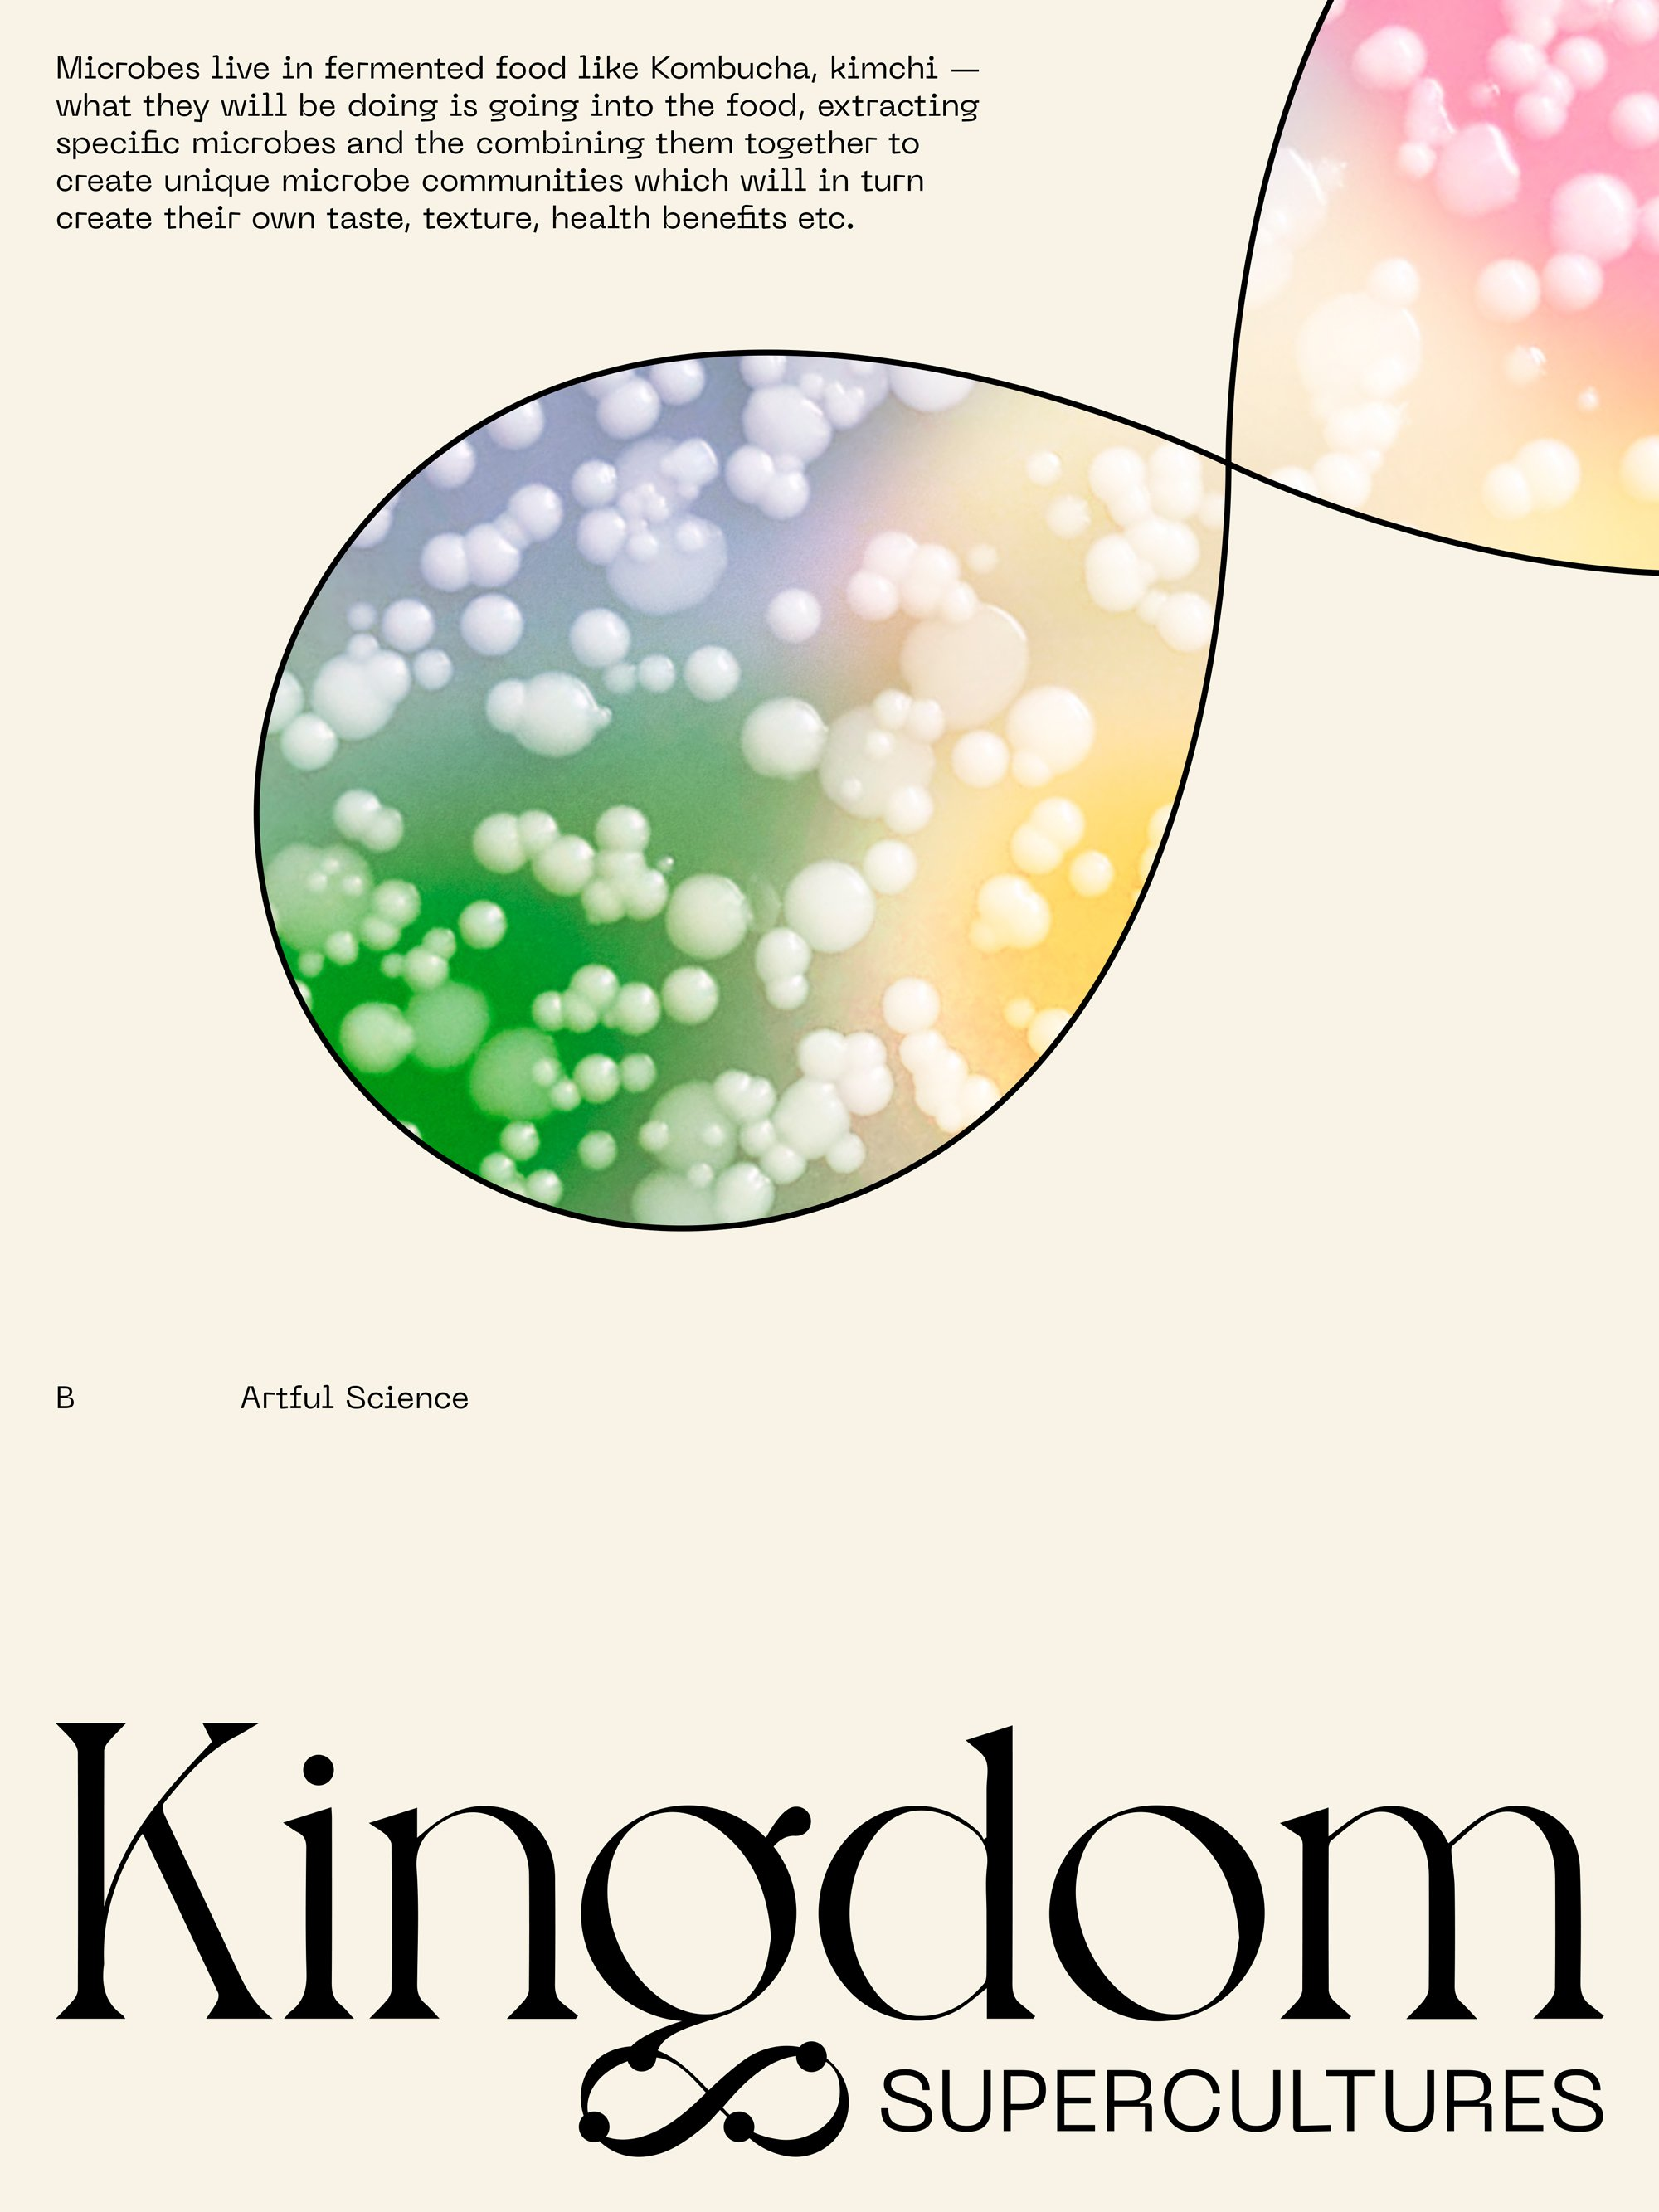 Kingdom Supercultures beige poster with custom infinity sign graphics, designed by RoAndCo